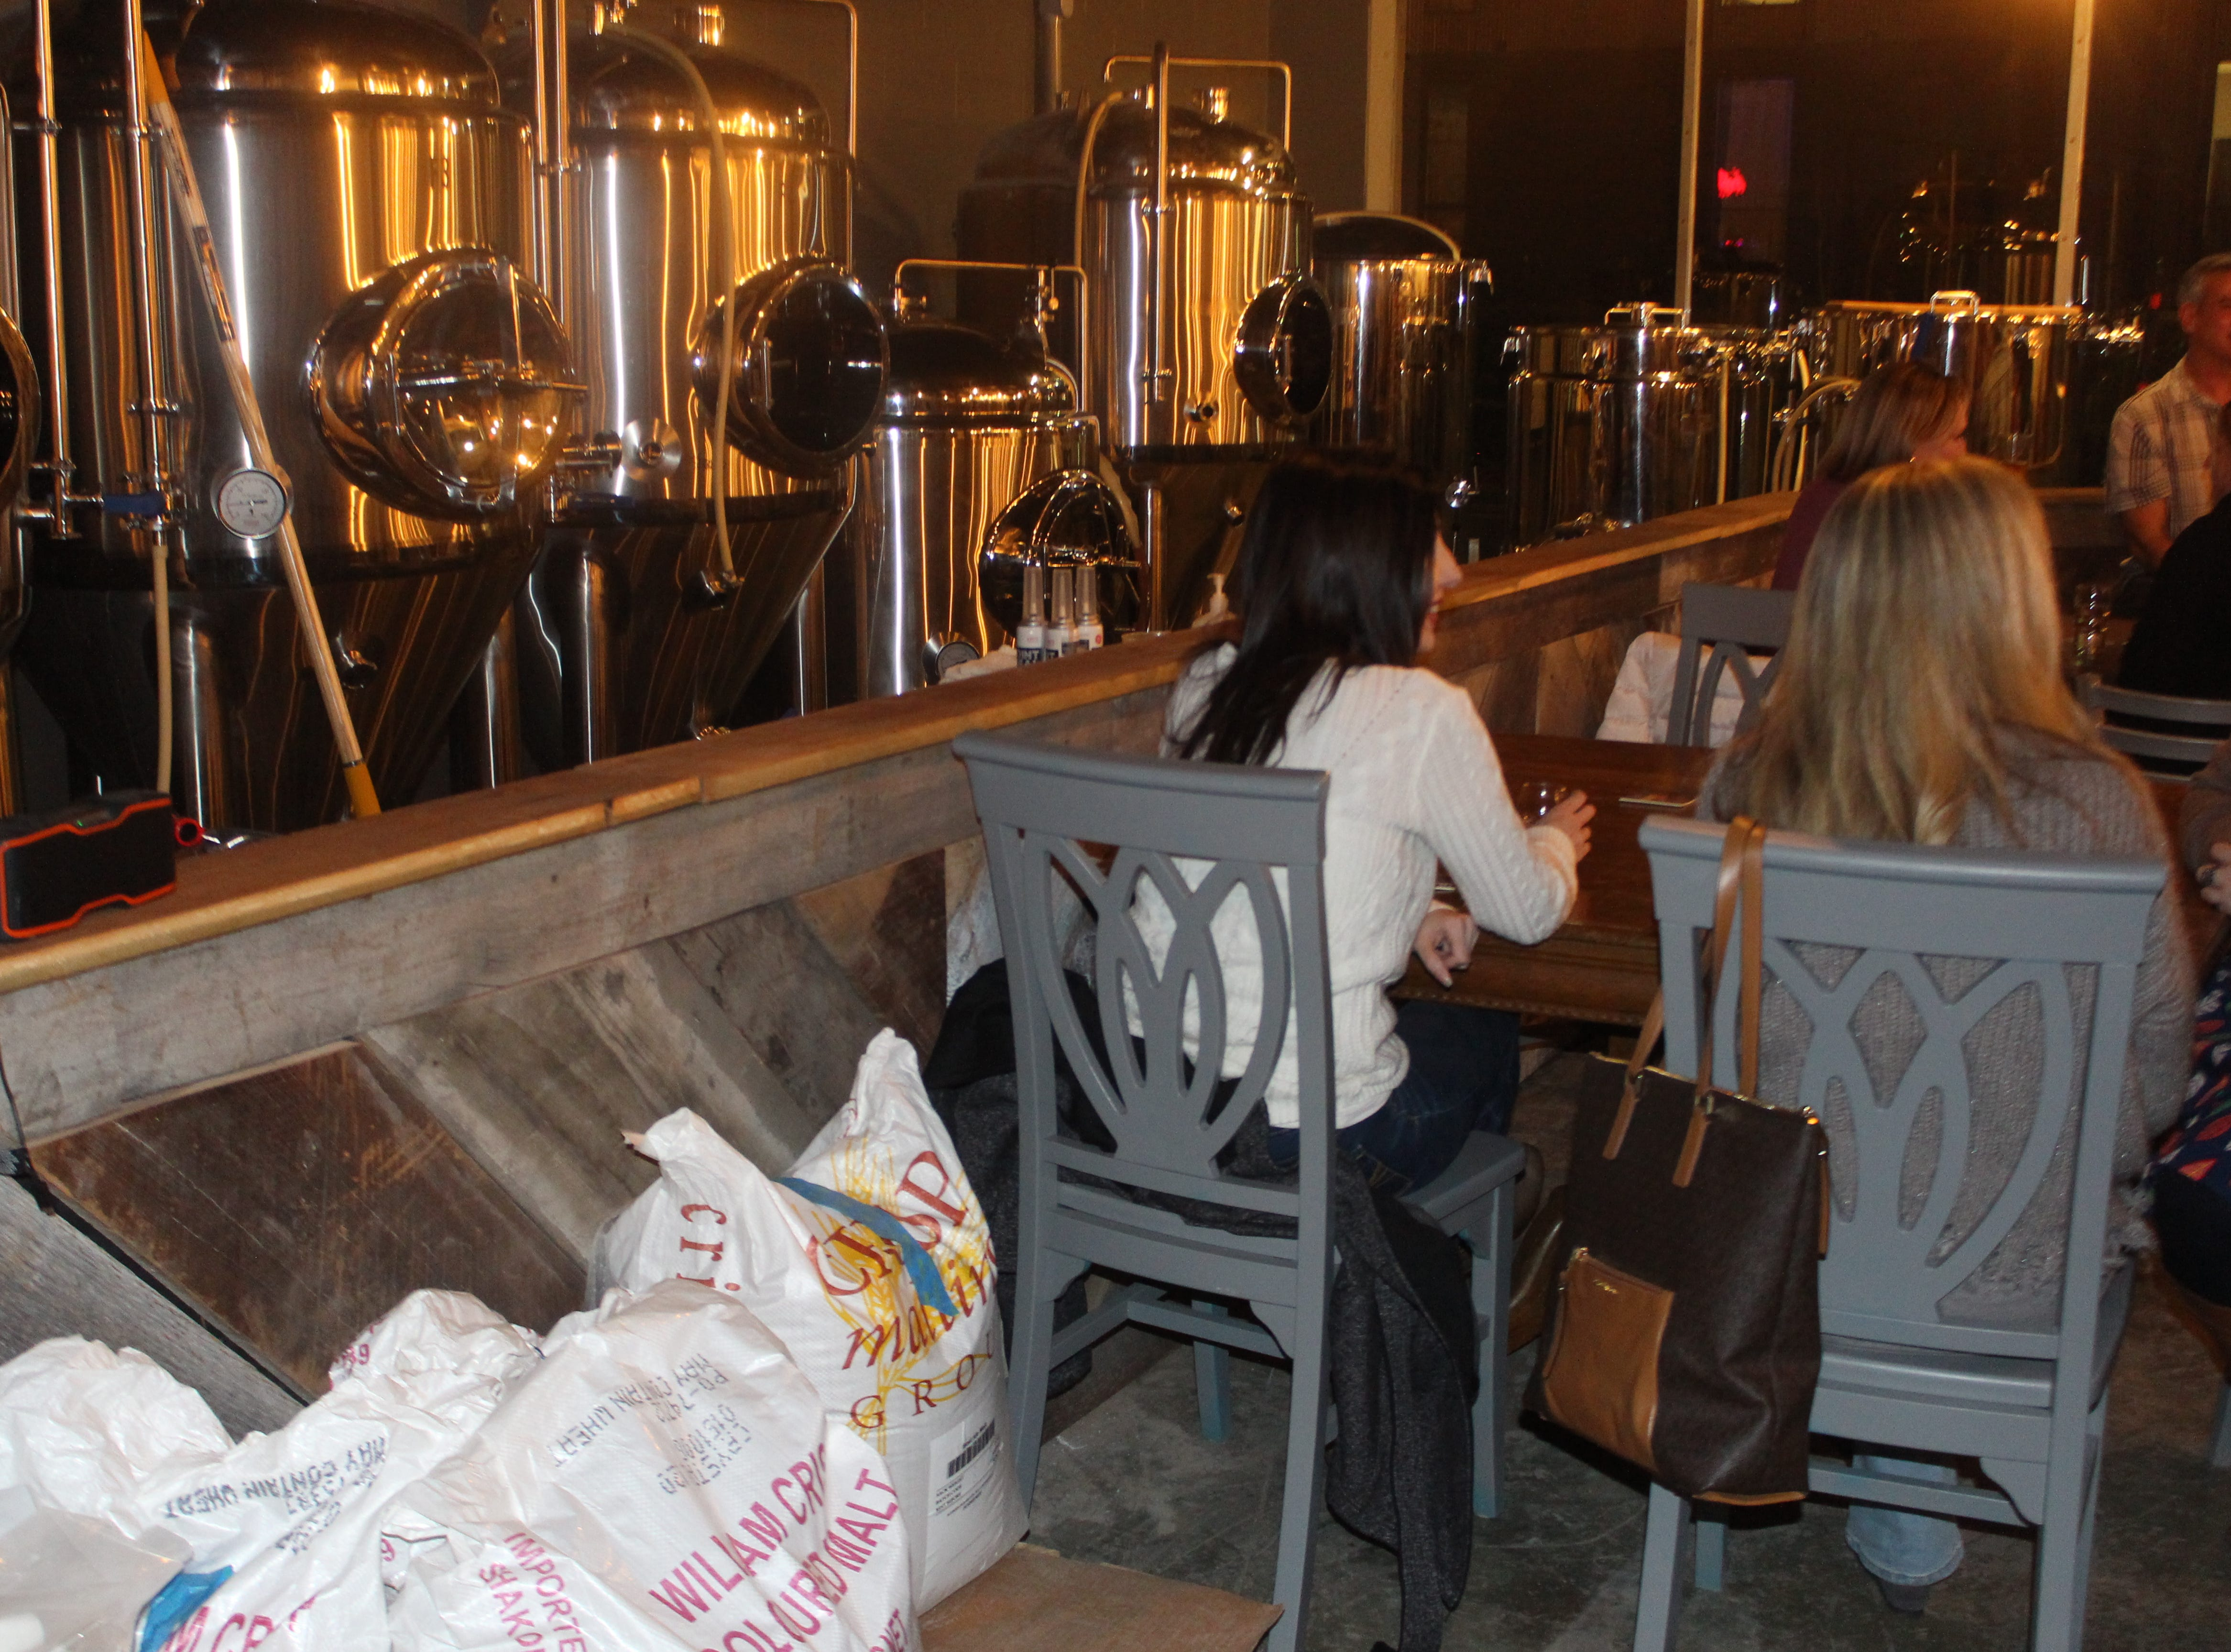 Kings Bluff Brewery just opened in downtown Clarksville on University Avenue.